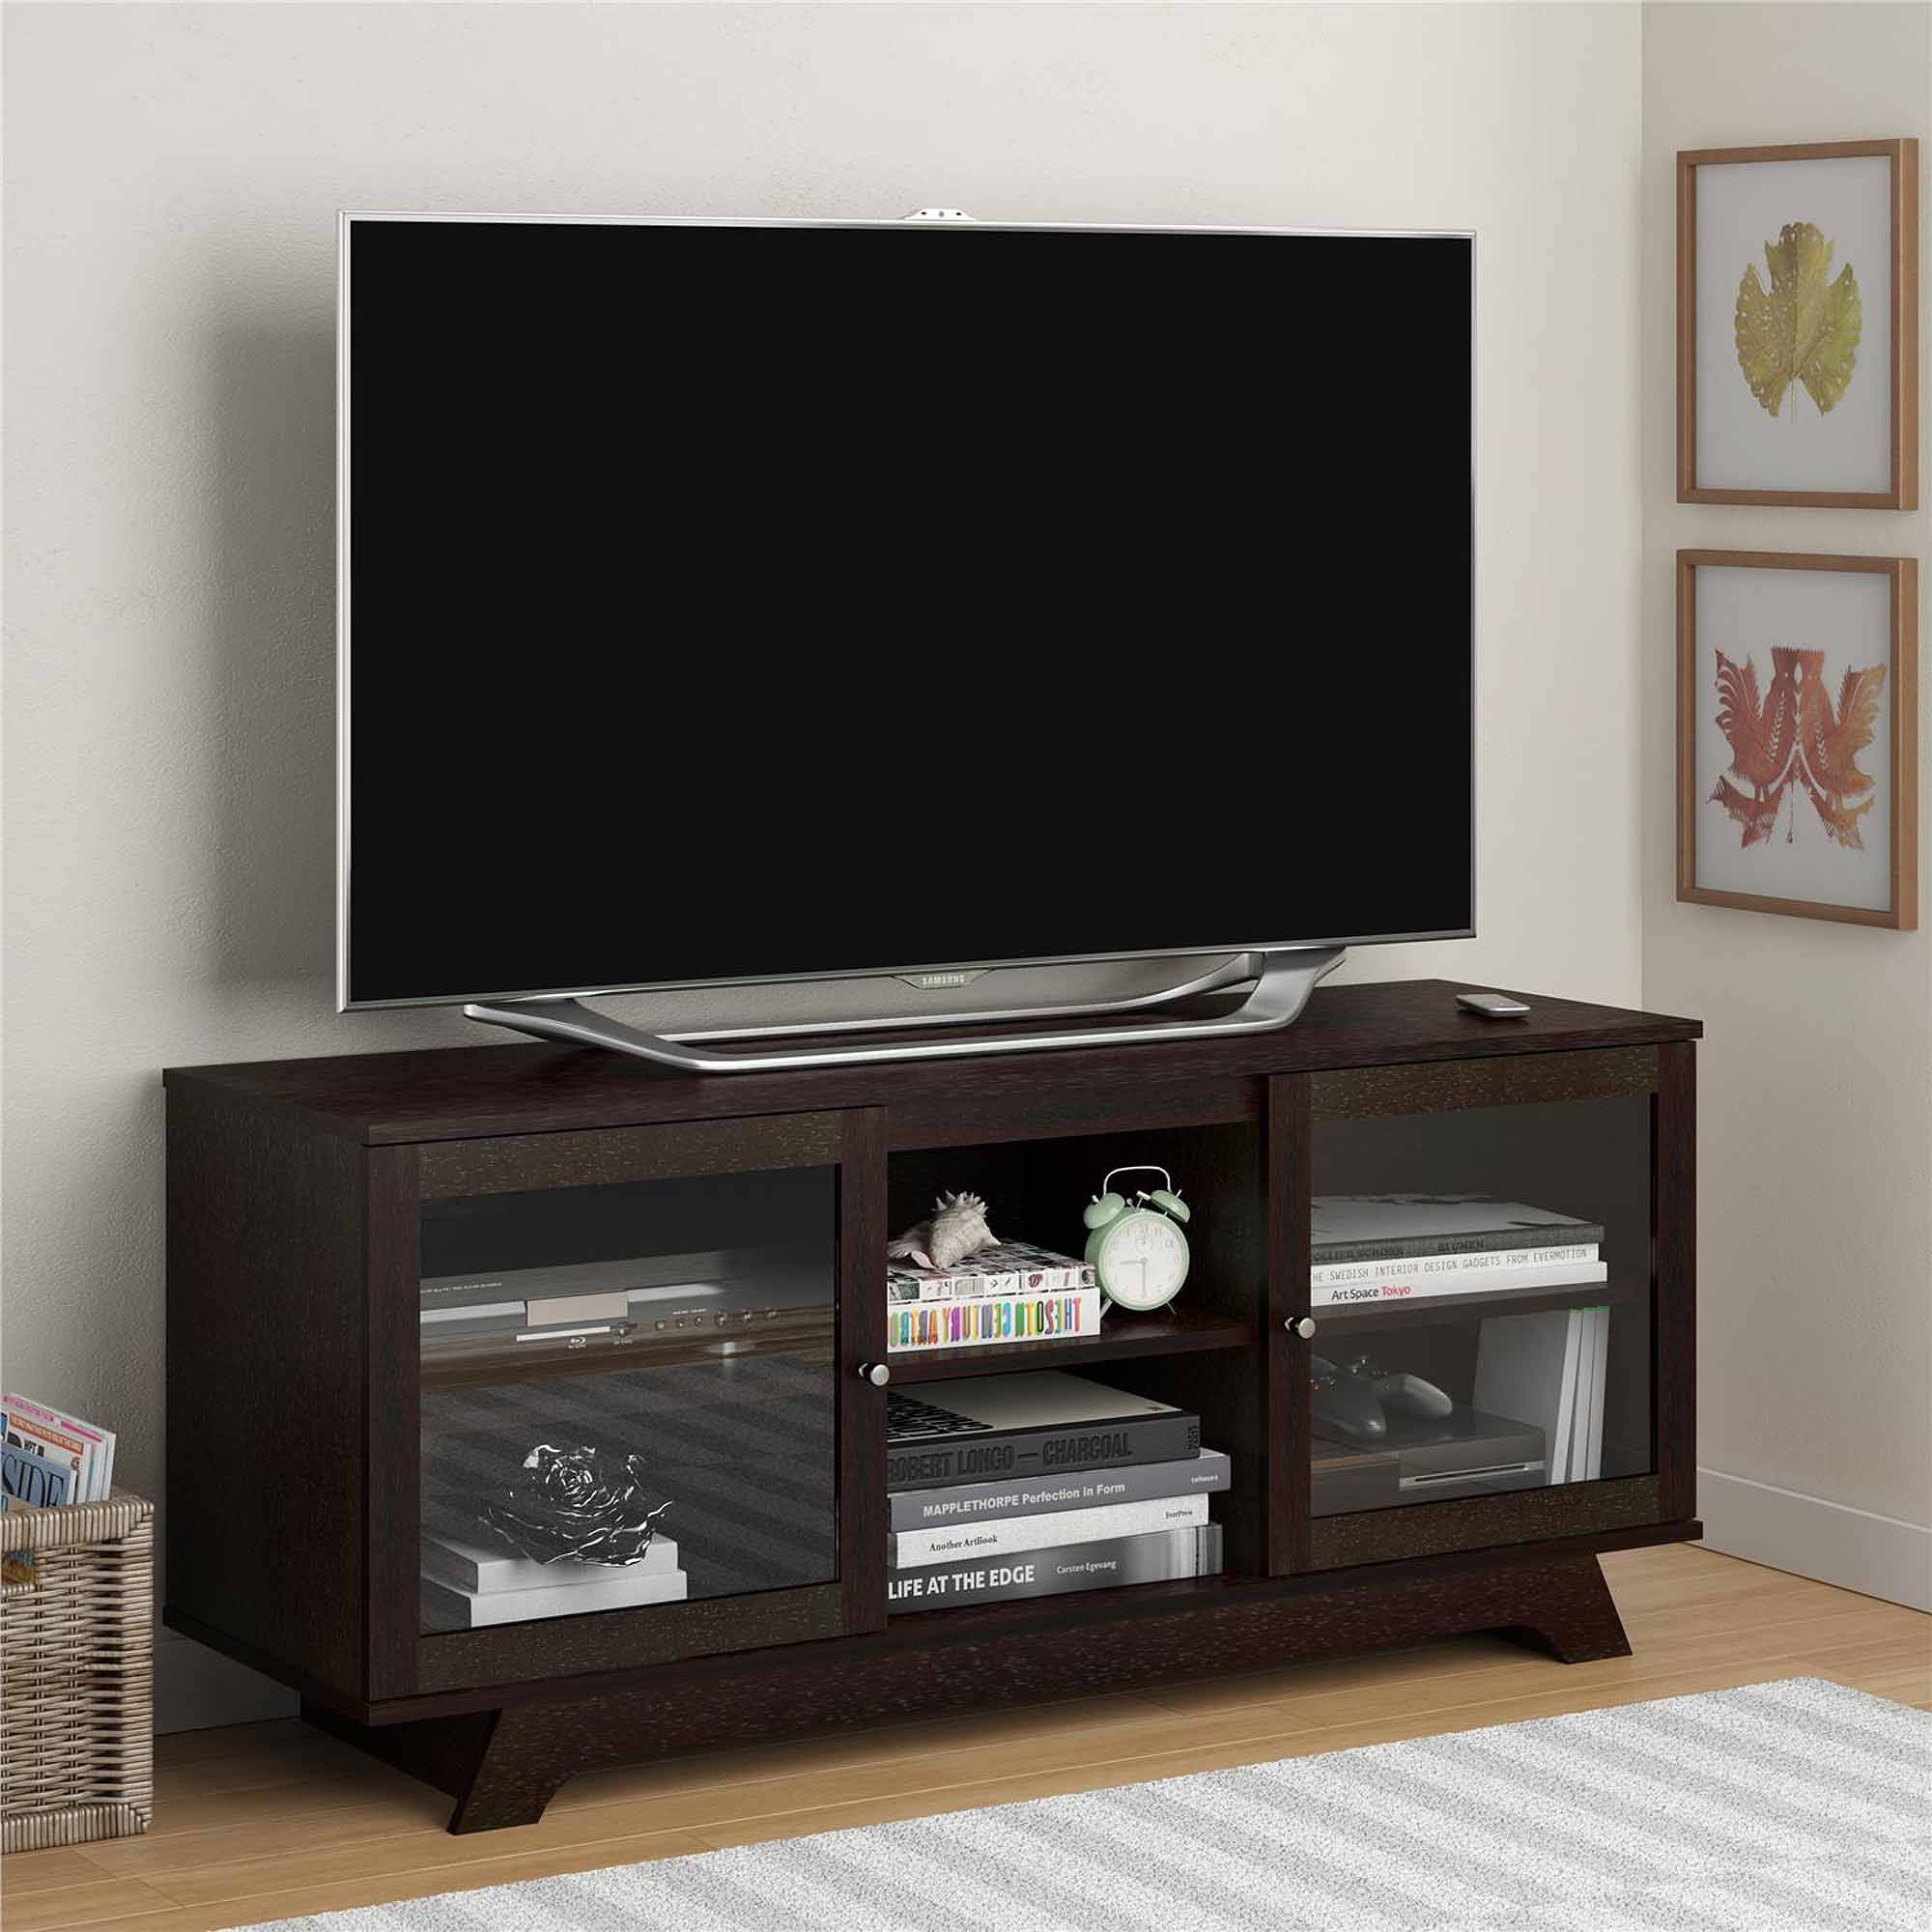 2018 Best of Tv Stands for Small Spaces